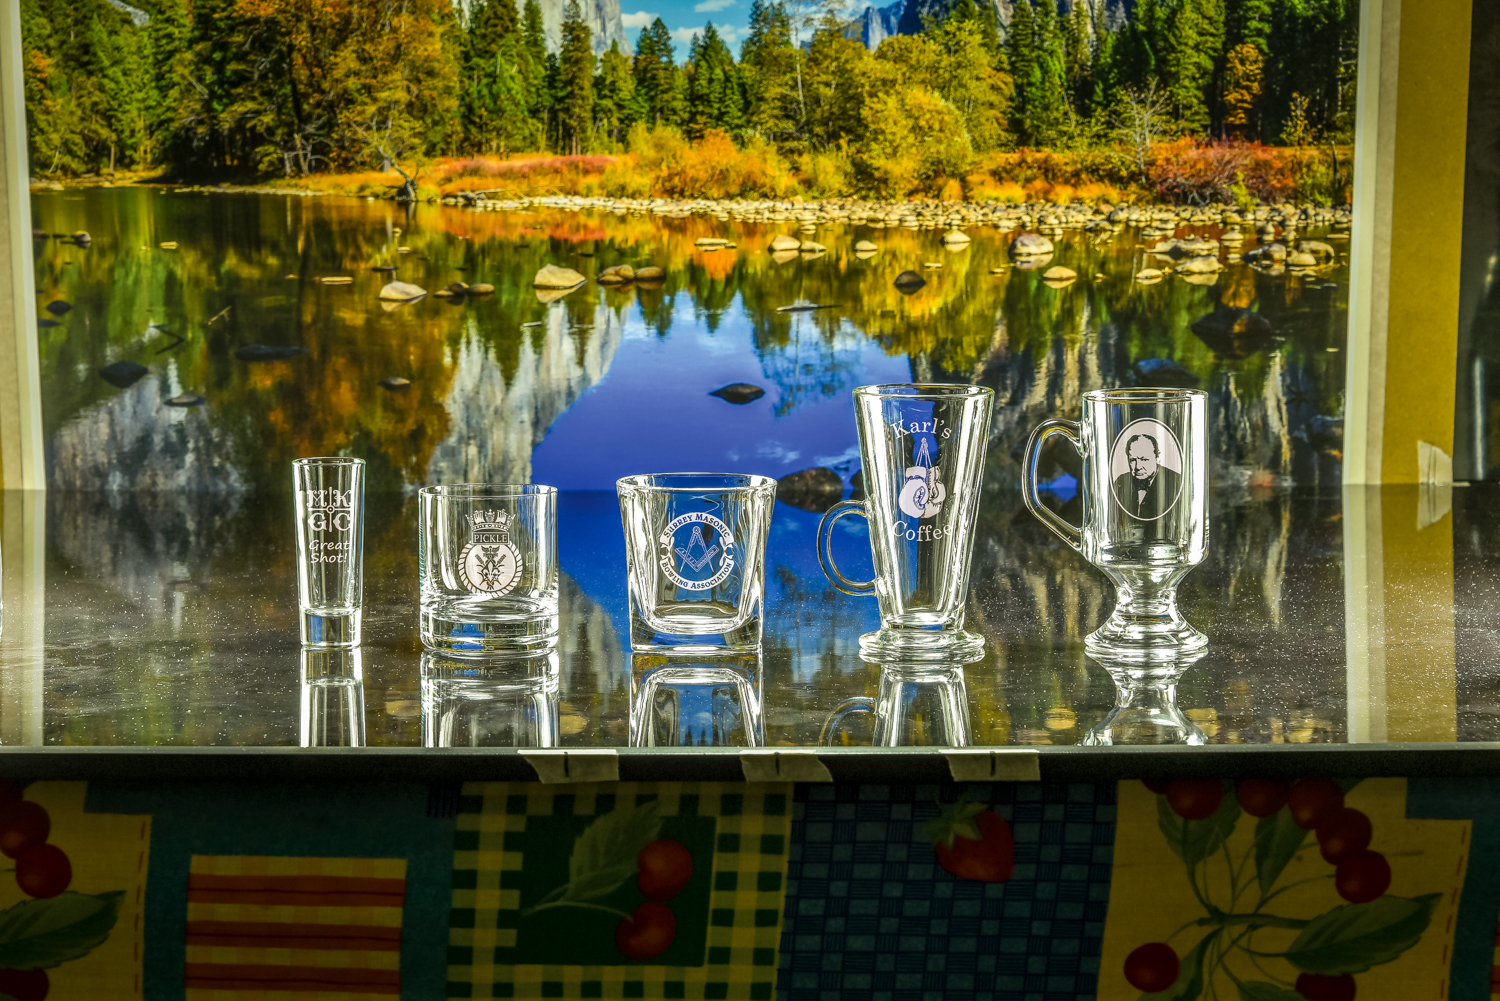 Majestic Crystal 2019 Brochure photos Shot Tot, Islande Tumbler, Admittable Tumbler, Latte Glass, Ga